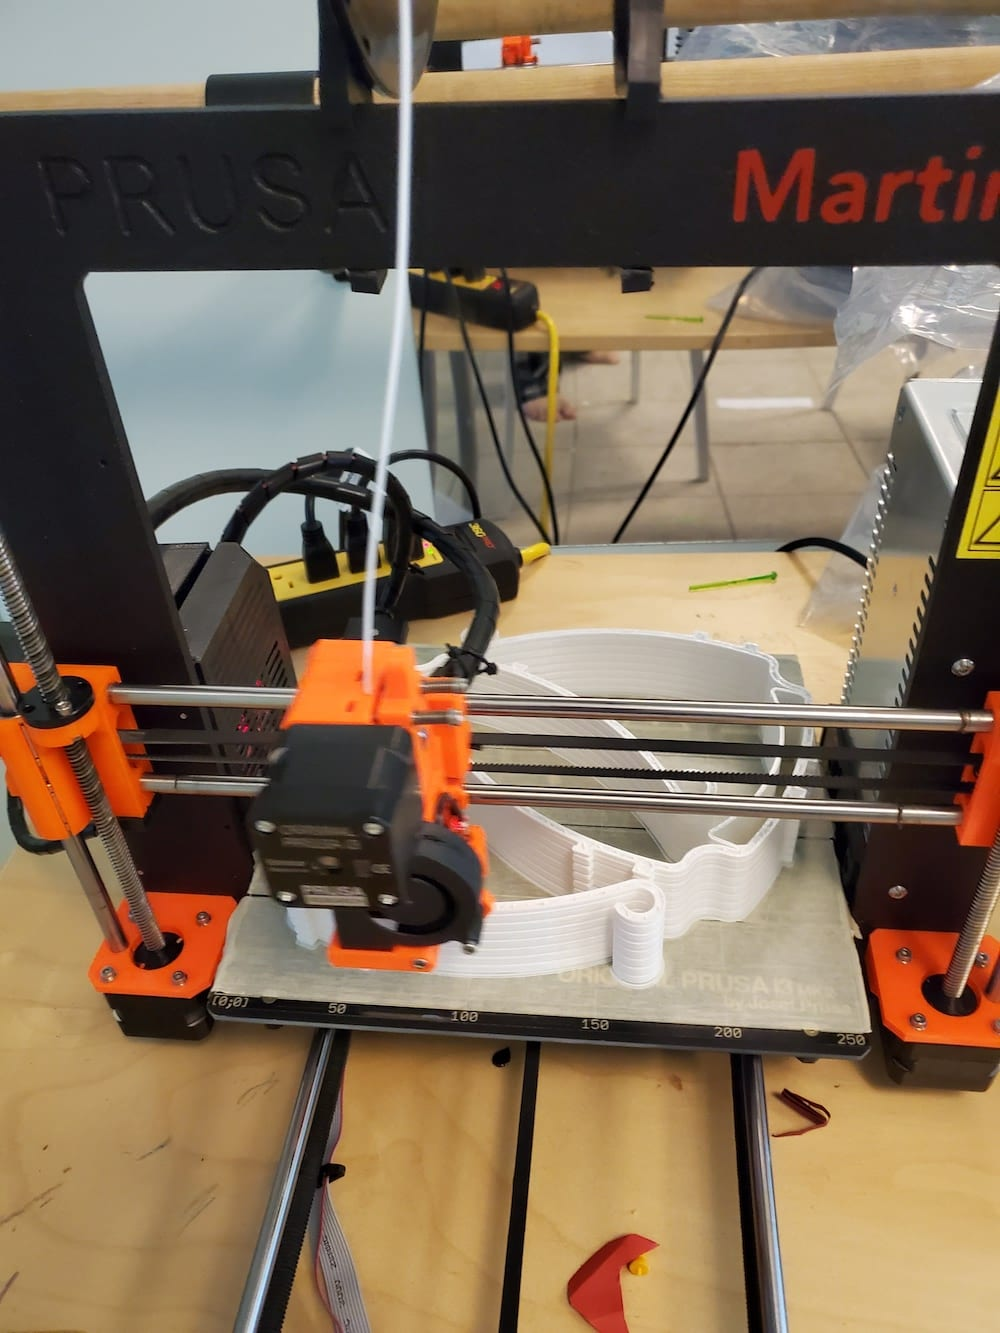 A 3D printer making white headbands for face shields.